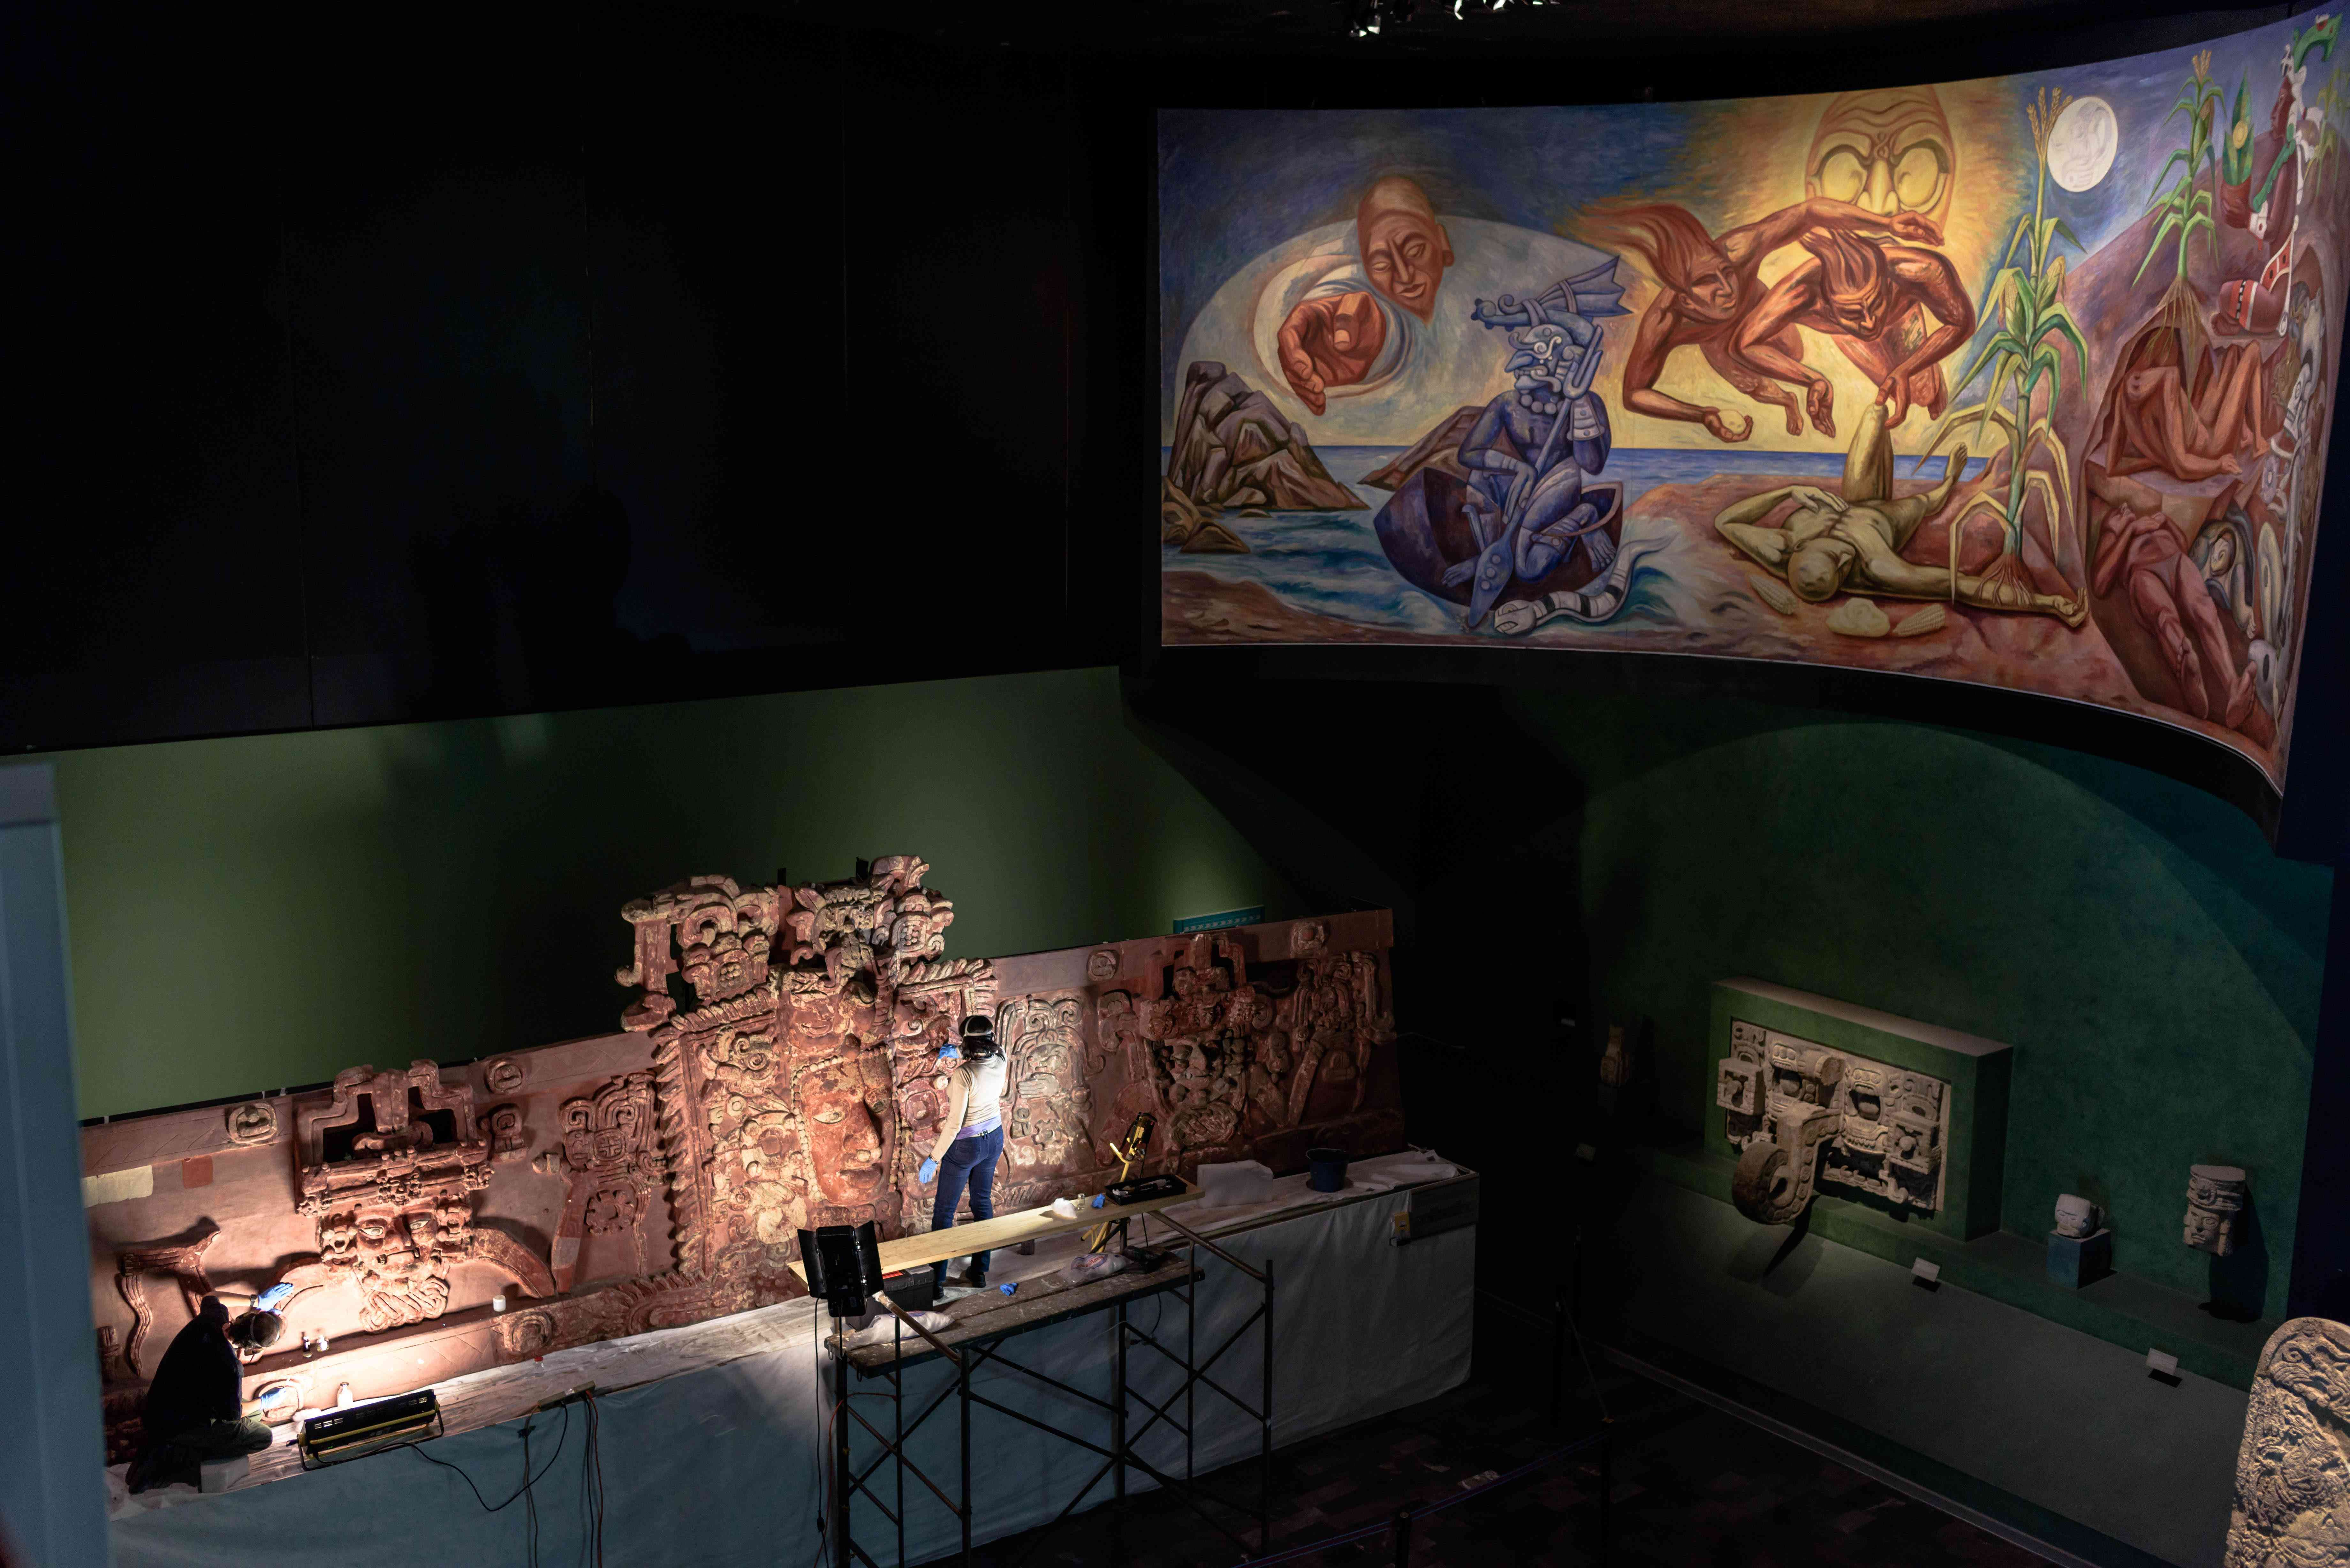 Murals being restored in the Naitonal Athropology museum